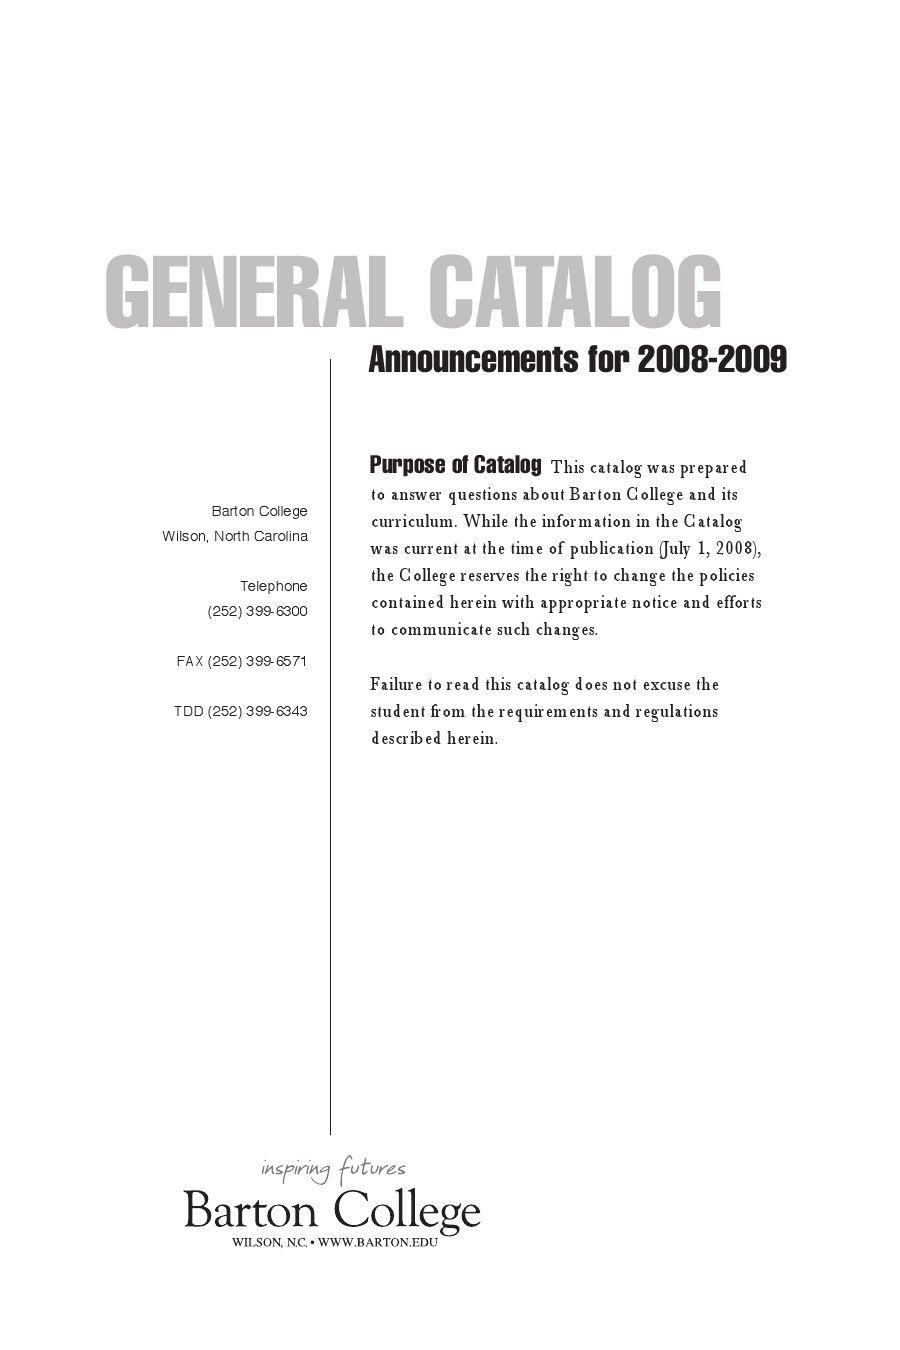 2008/2009 Barton College Course Catalog by keith tew - issuu